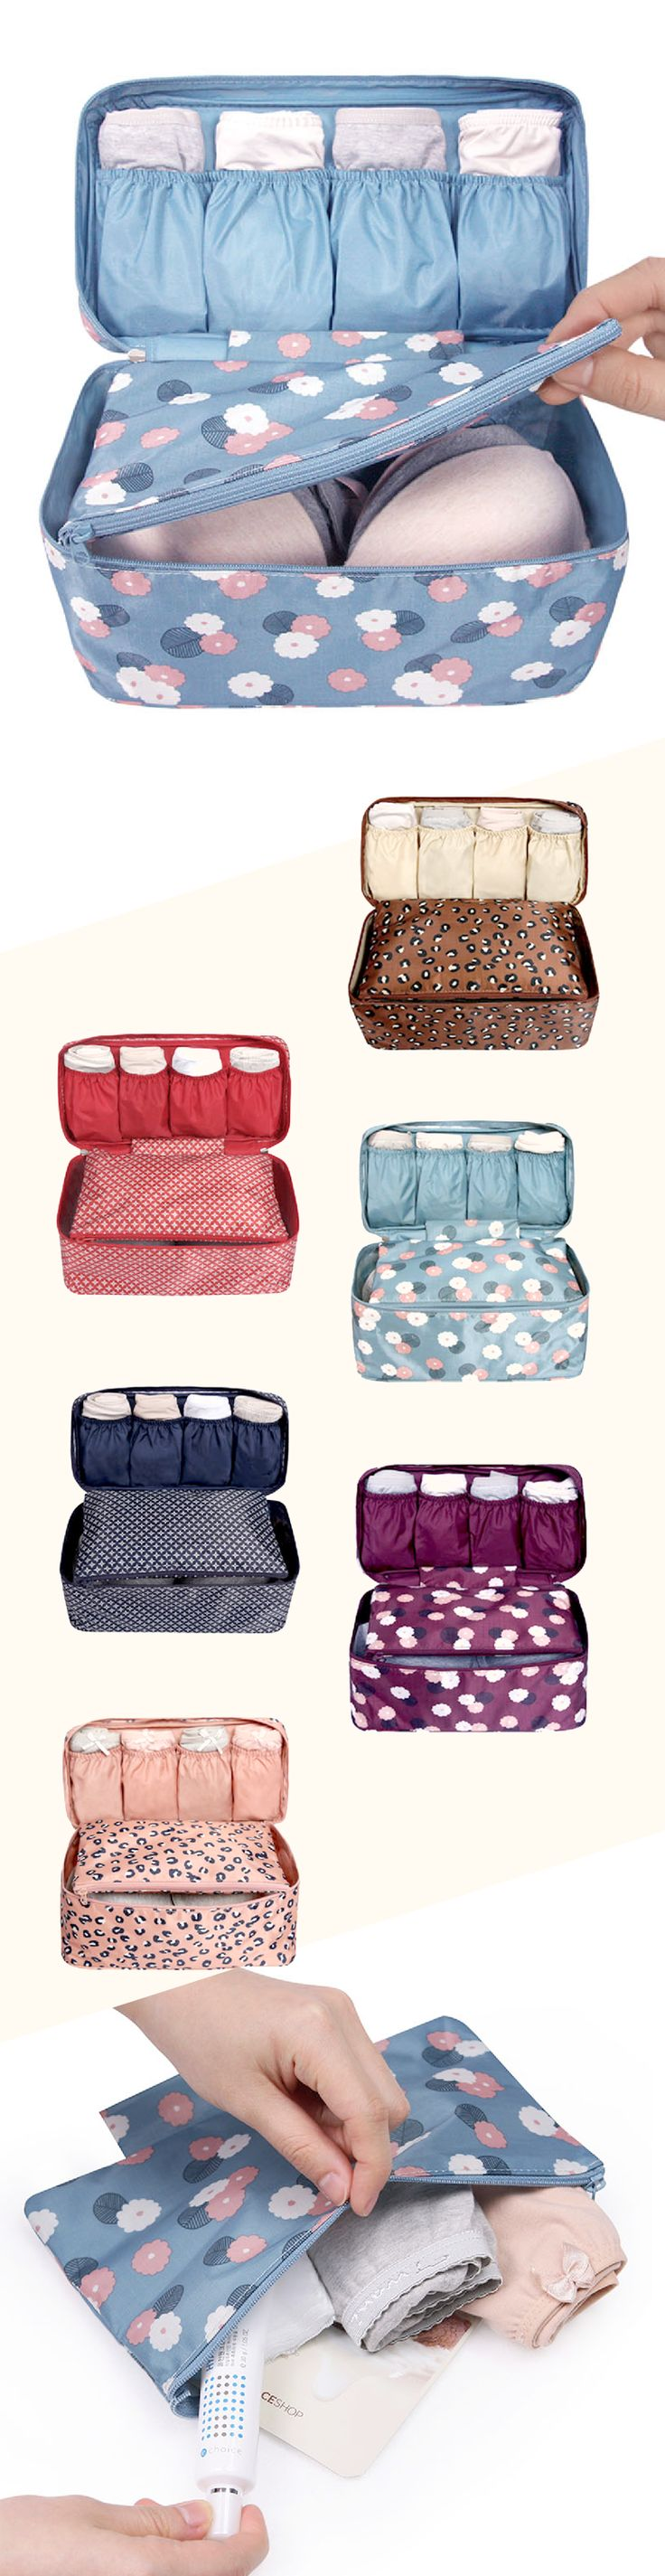 Wow! These underwear pouches are so cute. Keep your underwear and bras all in one, organized place while traveling. Fits 4-6 underwear and 4-6 bras! Includes a detachable pouch perfect for storing already-worn underwear. Includes handle for easy carrying, and a waterproof exterior. Comes in 2 different sizes, and 6 different patterns!